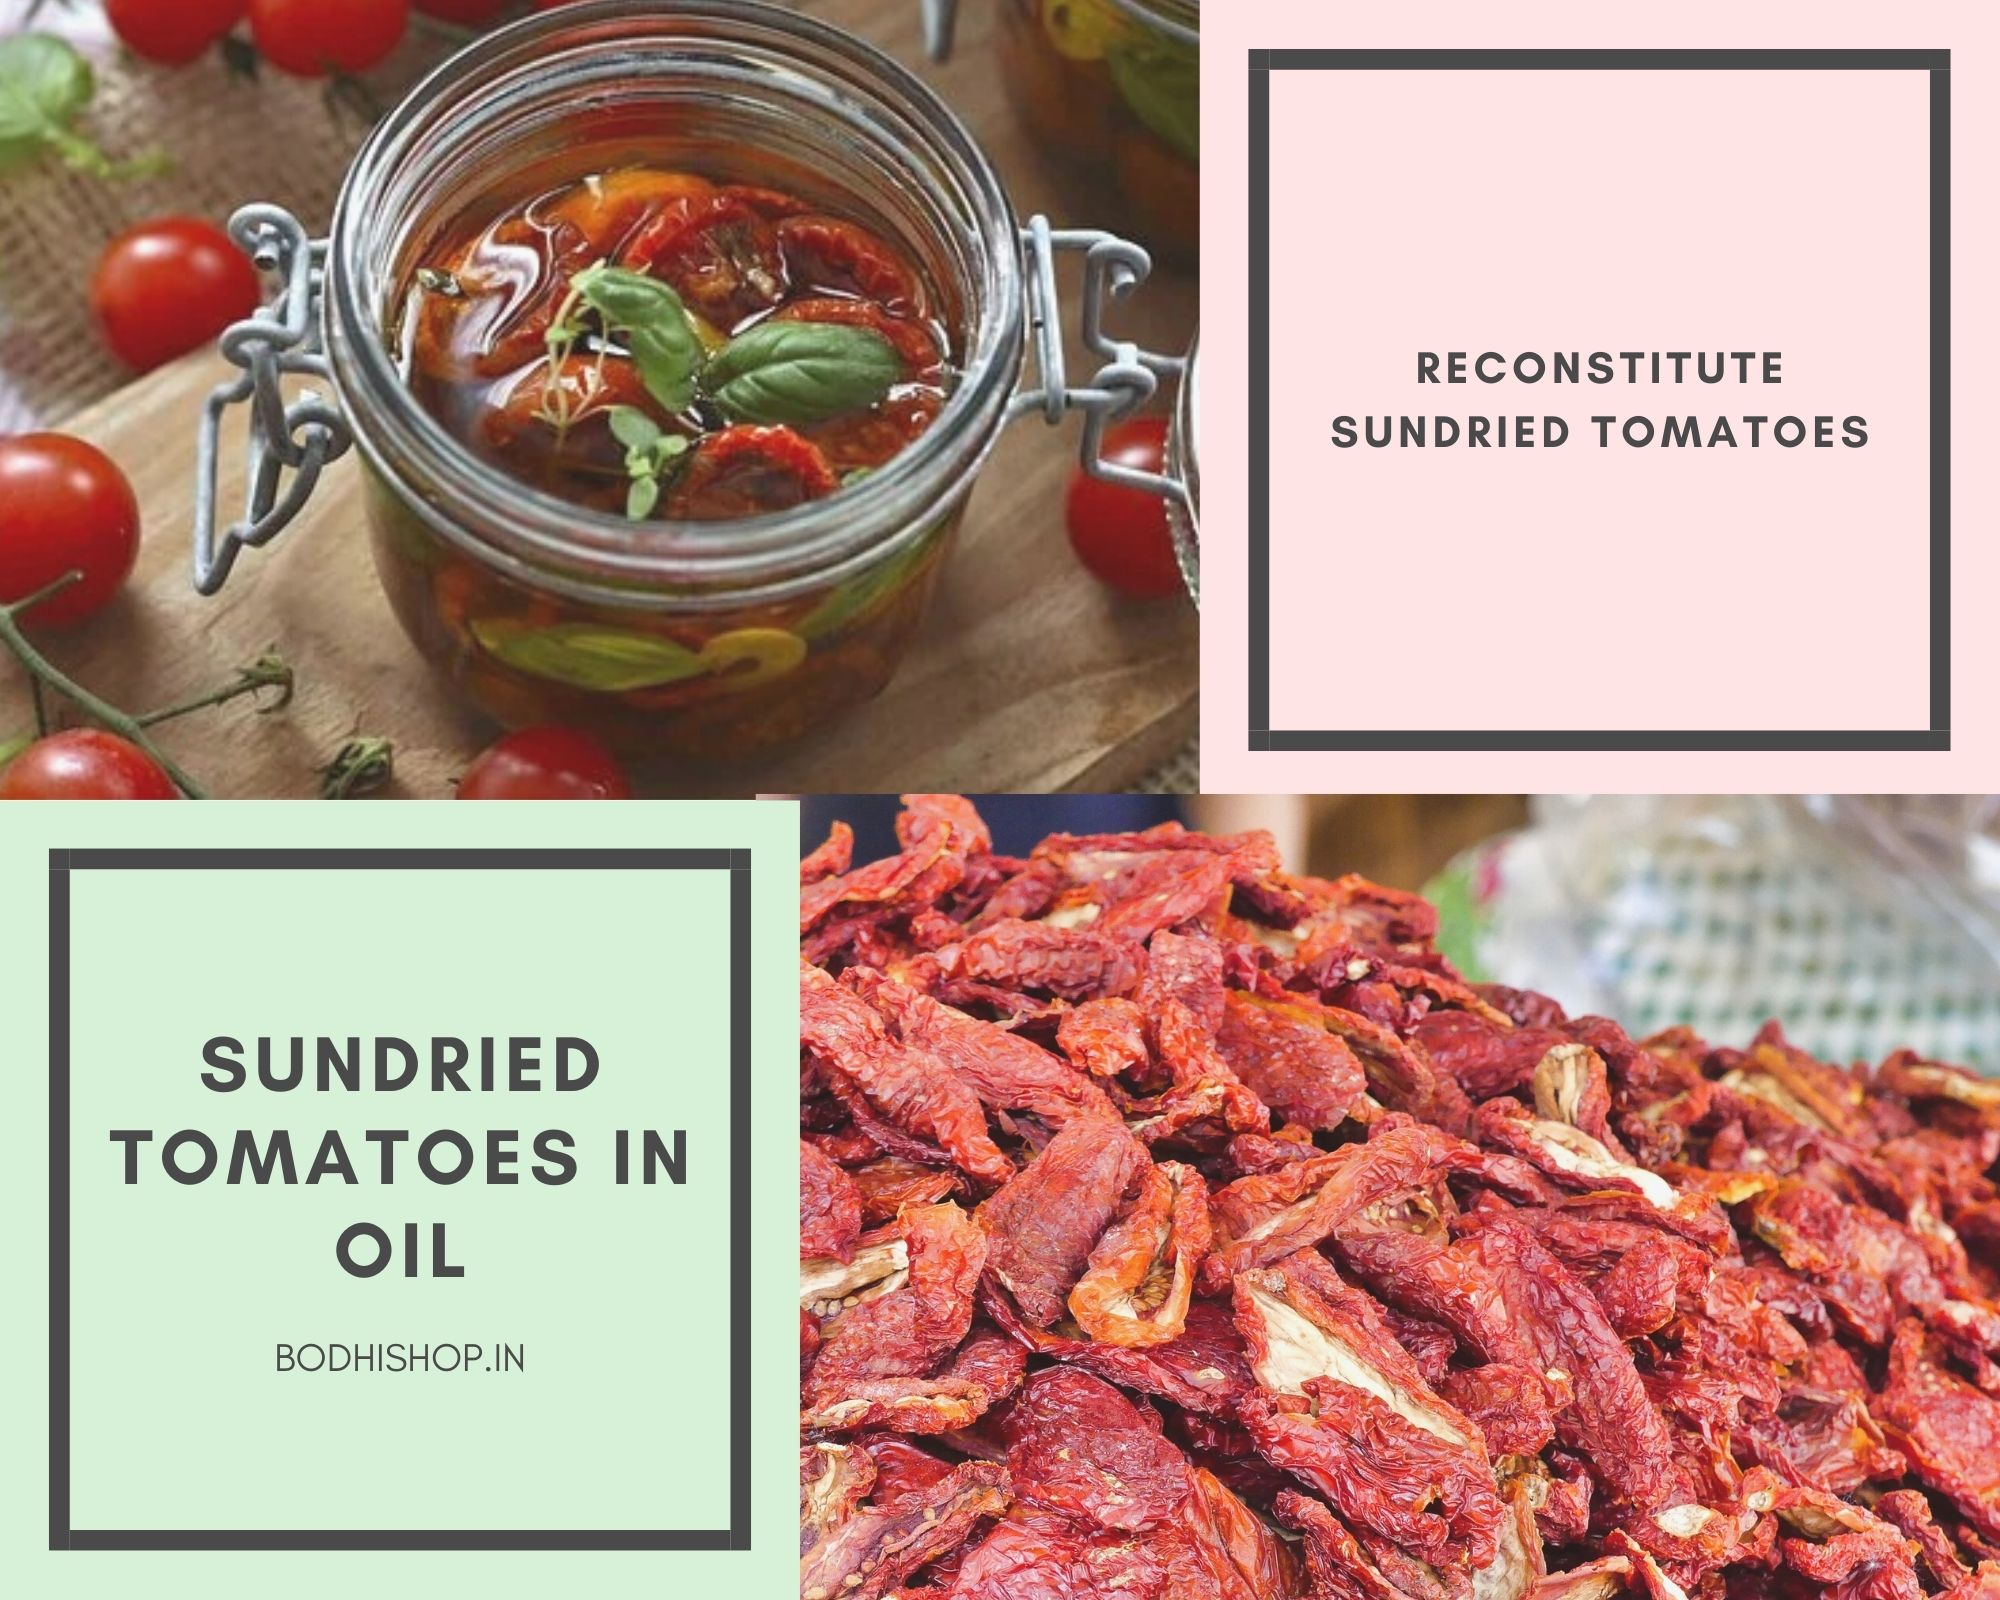 Sun-dried tomatoes in oil at home?